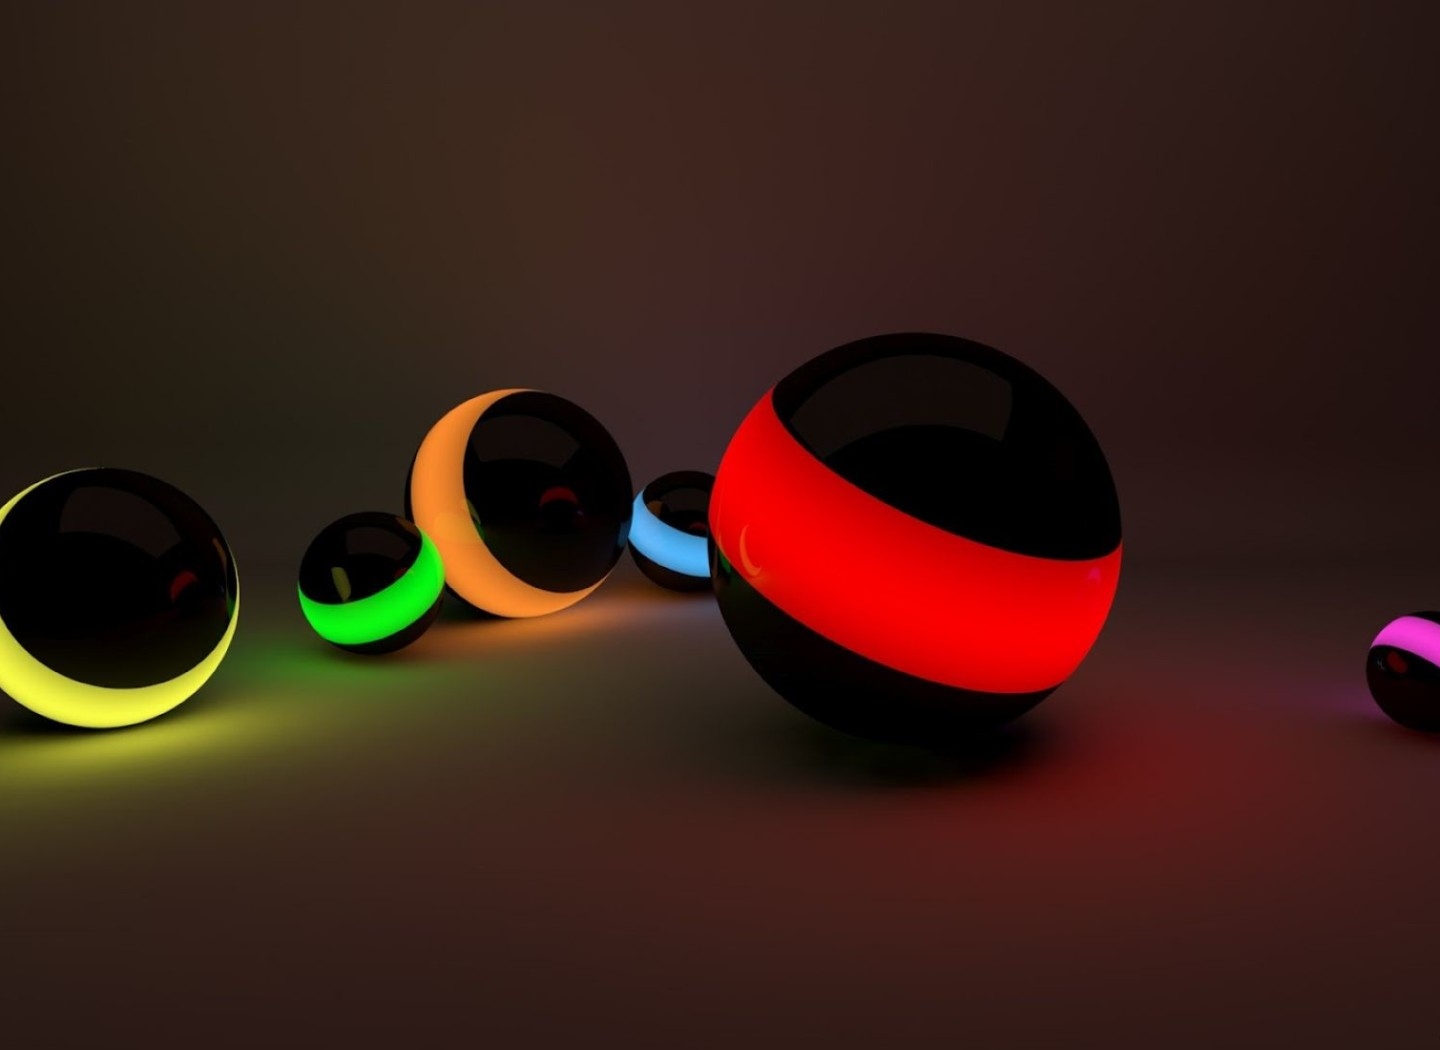 3d Hd Colorful Ball For Laptop Free Download Wallpaper